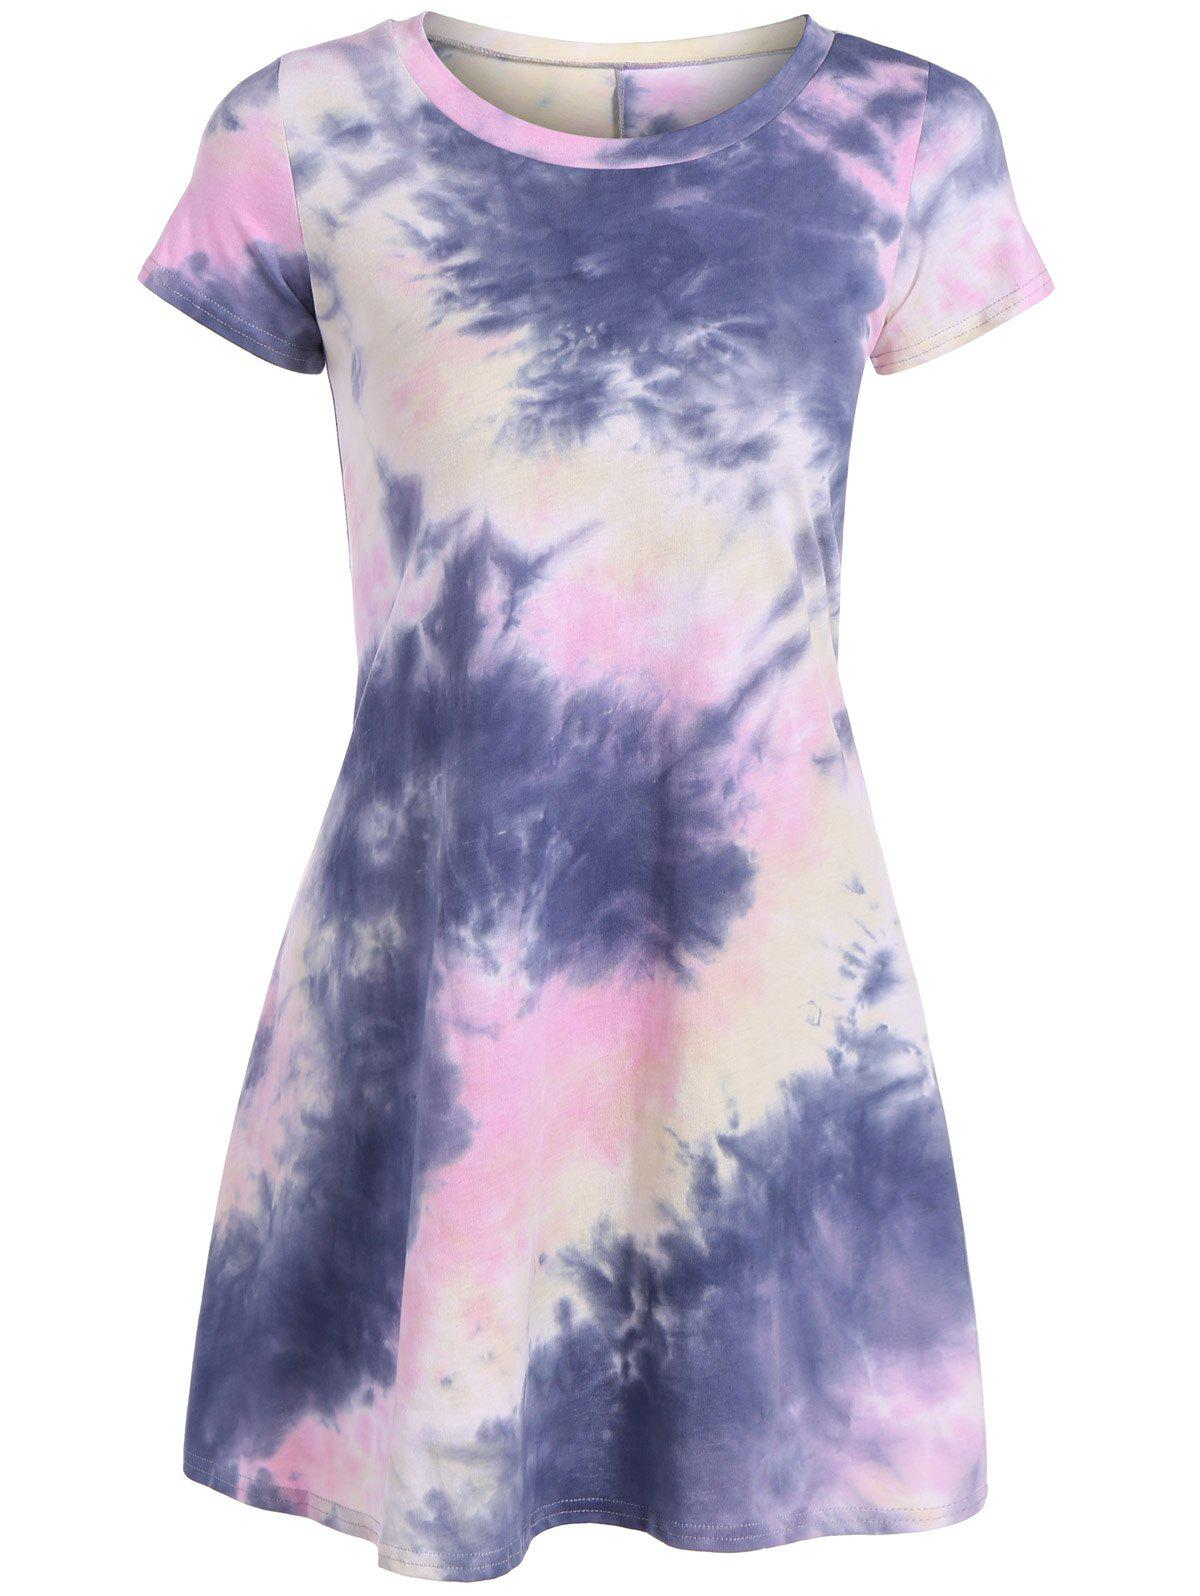 Buy Loose Tie-Dyed T-Shirt Dress COLORMIX